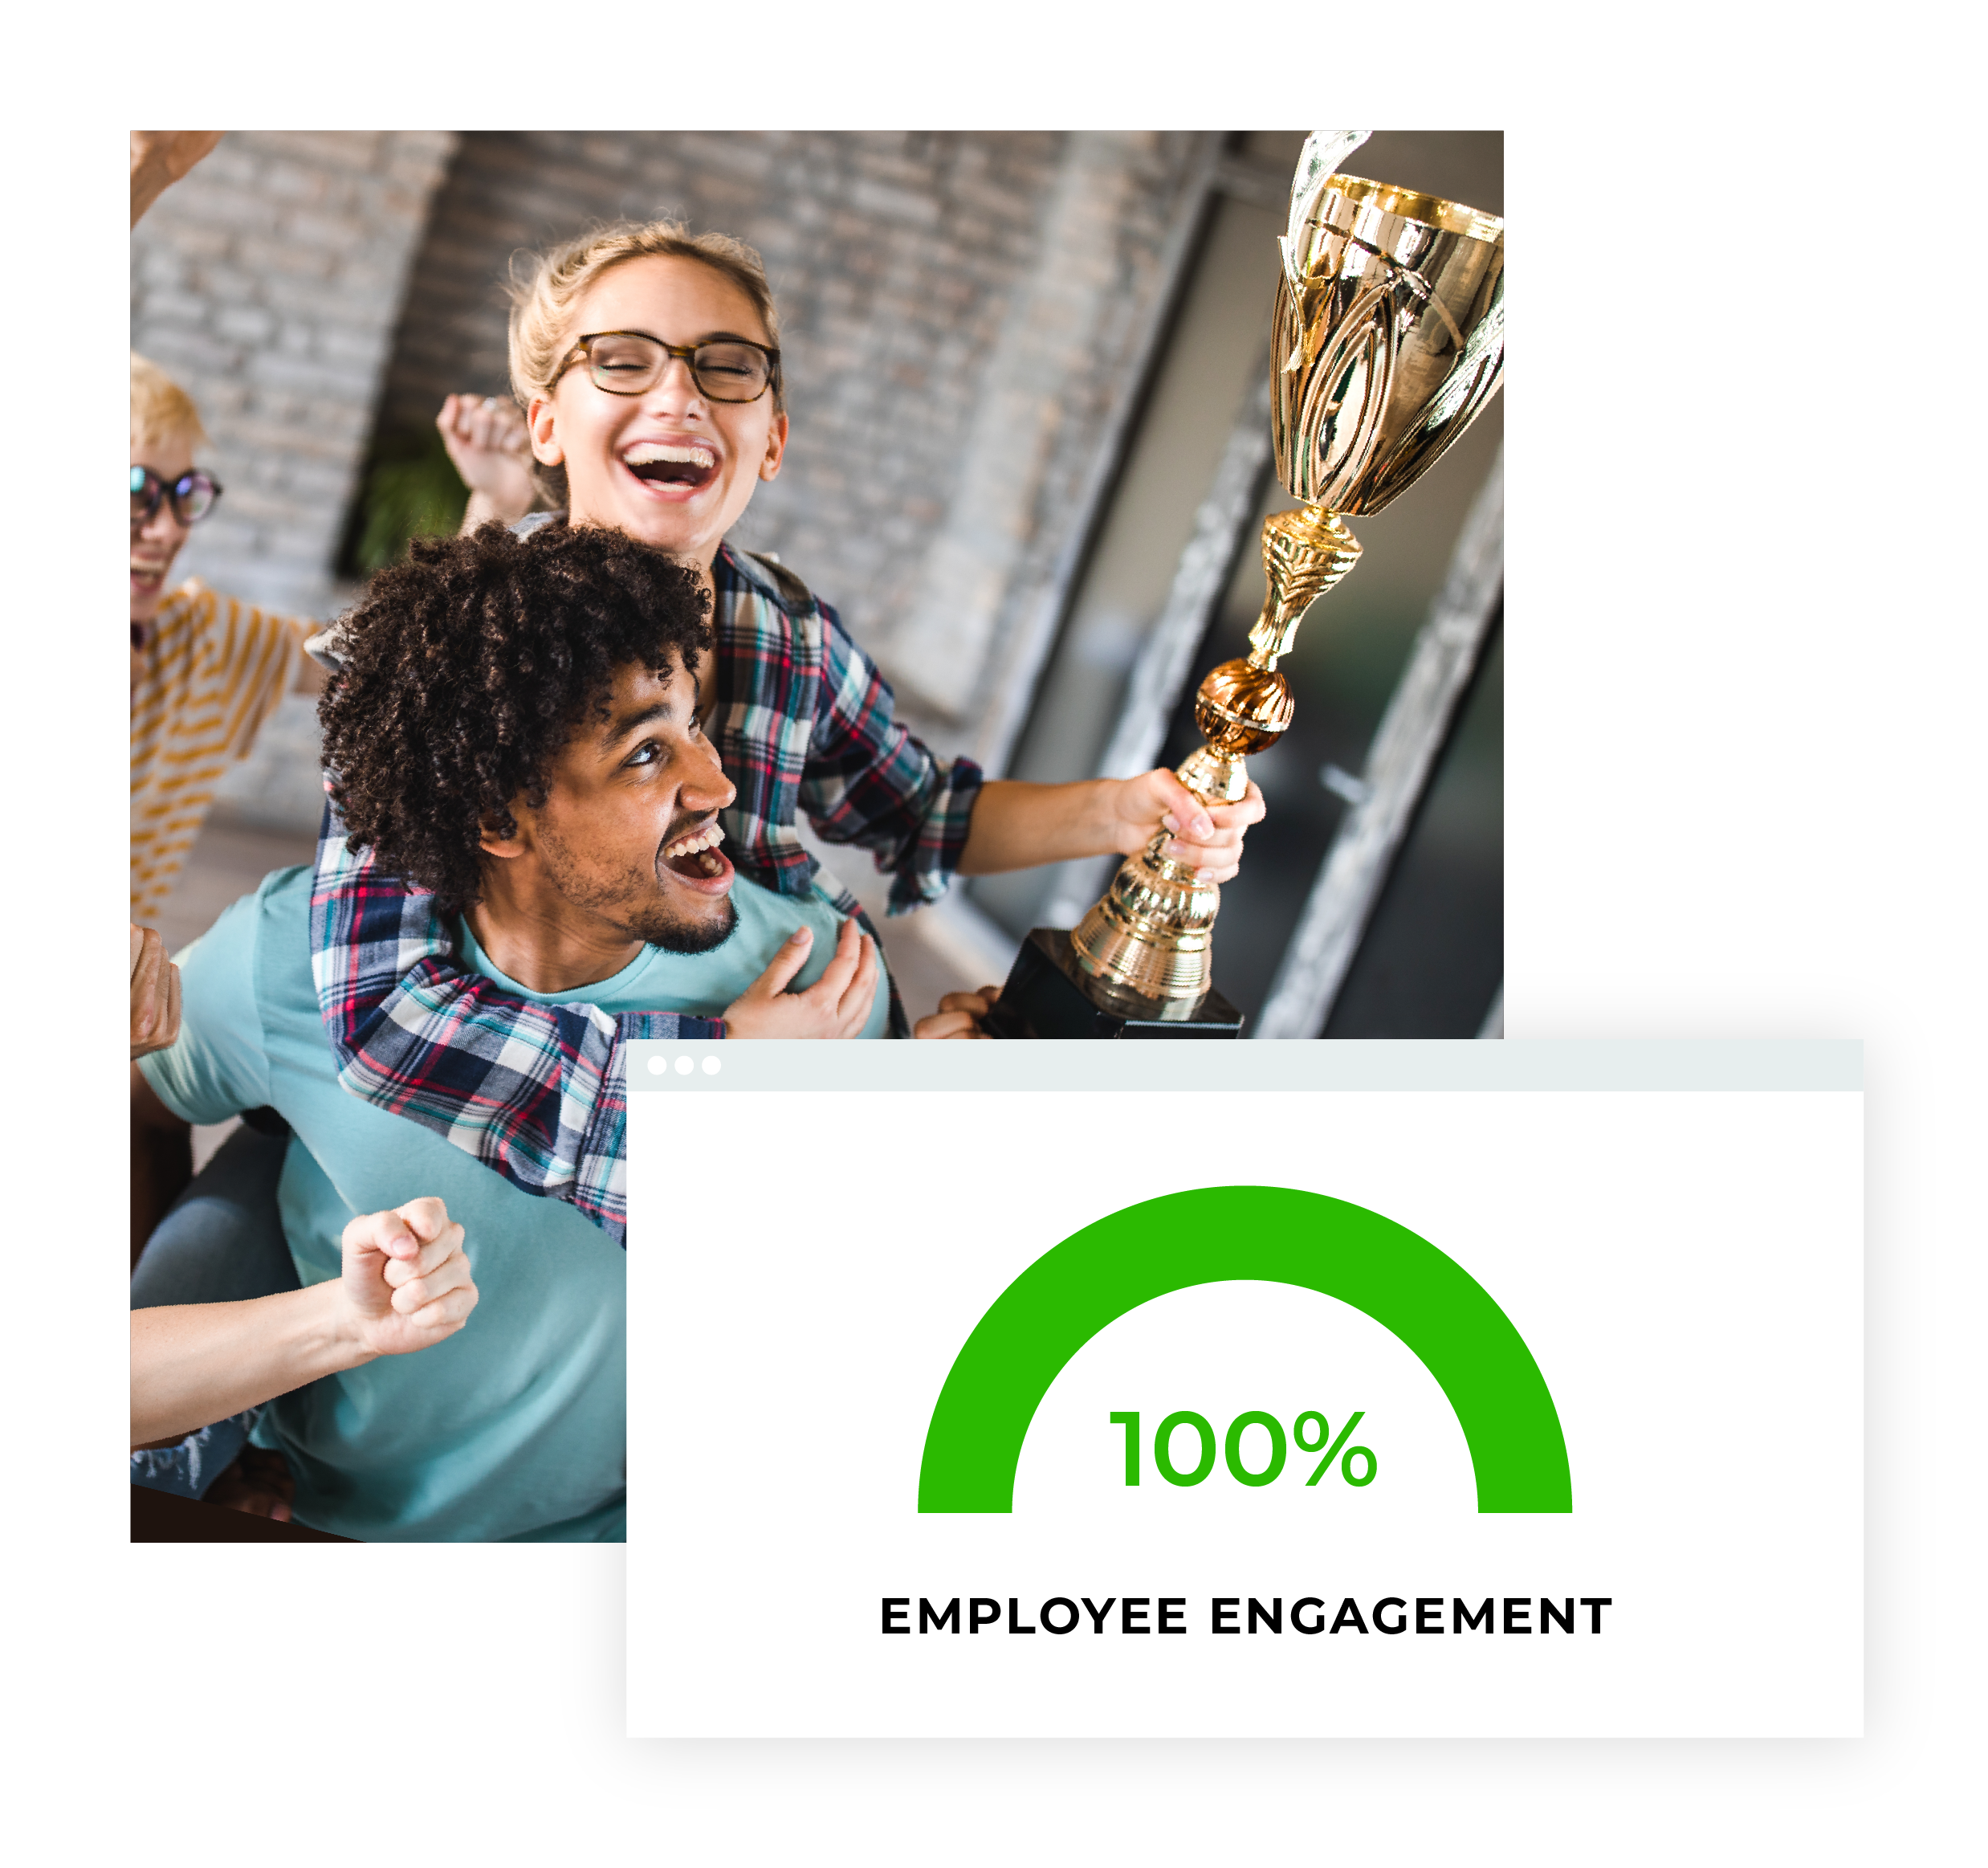 Image of teammates holding trophy and infographic depicting 100% employee engagement.